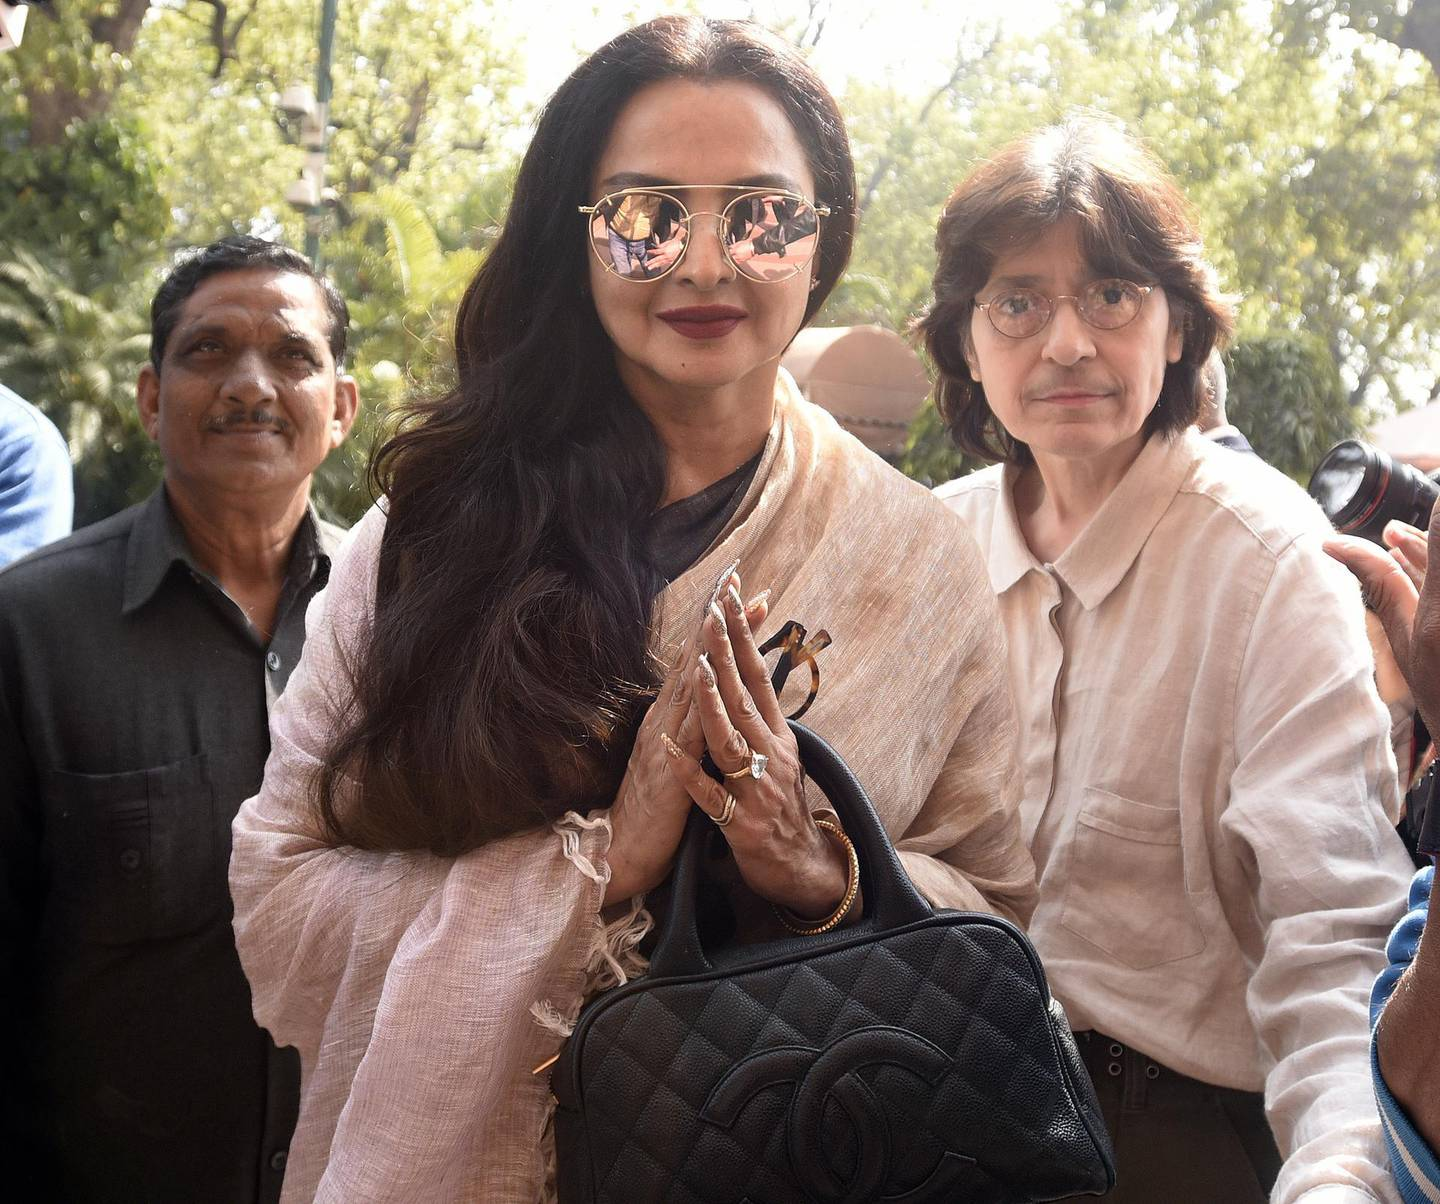 NEW DELHI, INDIA - FEBRUARY 8: Rajya Sabha Member of Parliament and Film actress Rekha after attending the Parliament Budget Session on February 8, 2017 in New Delhi, India. Prime Minister Narendra Modi spoke against corruption and black money during his reply to the debate on motion of thanks to President's address in Rajya Sabha on Wednesday. Defending demonetisation, Modi said that the government's fight against corruption is not political. (Photo by Sonu Mehta/Hindustan Times via Getty Images)